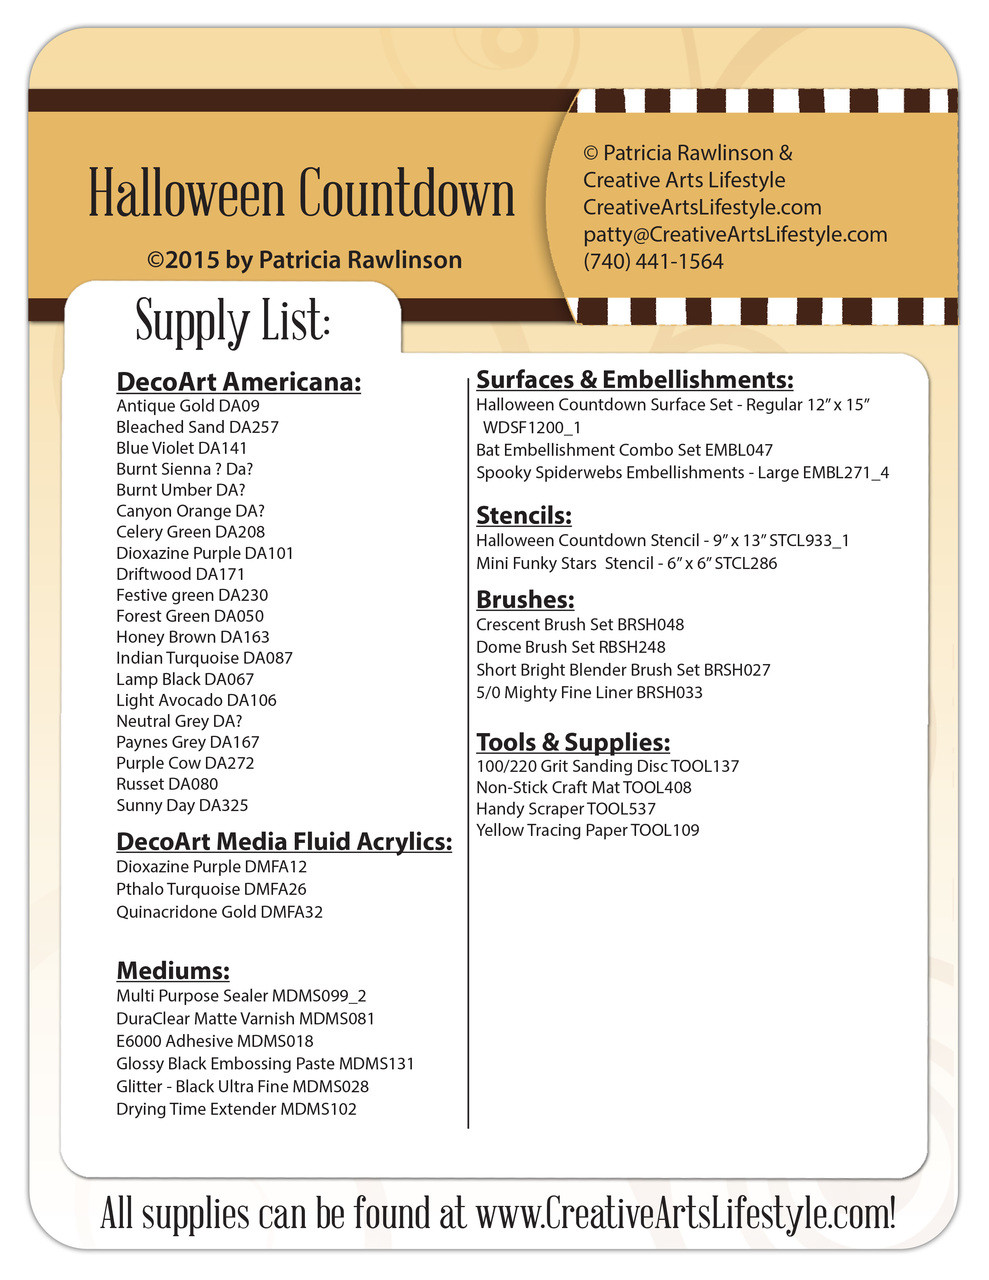 Halloween Countdown DVD and Pattern Packet - Patricia Rawlinson